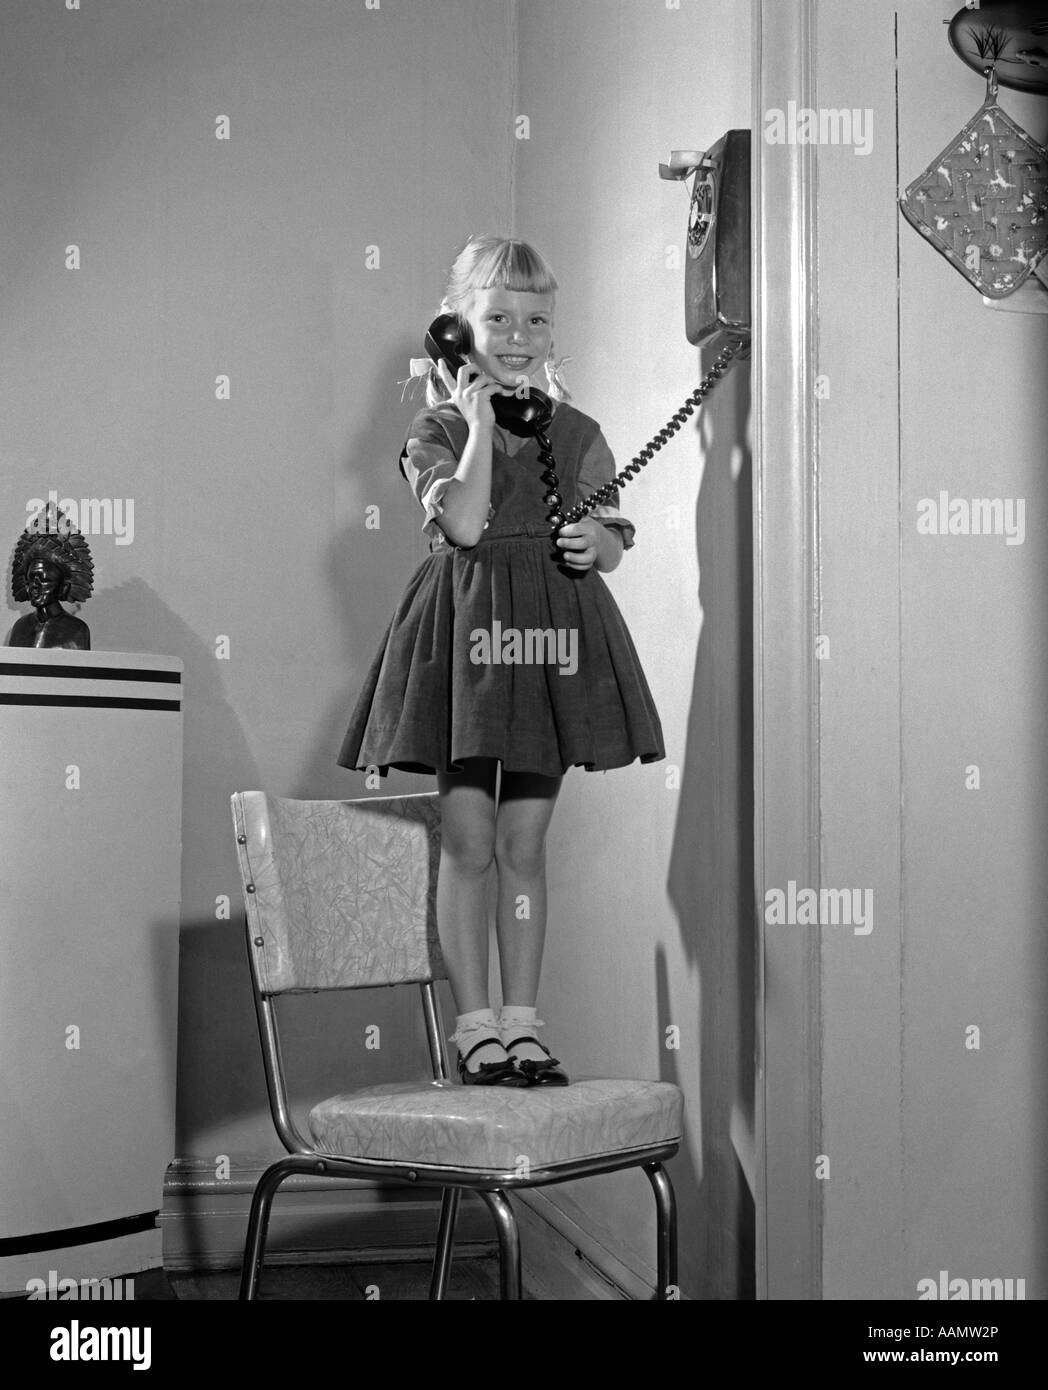 1960s 1950s YOUNG GIRL STANDING ON KITCHEN CHAIR TALKING ON WALL TELEPHONE  LOOKING AT CAMERA